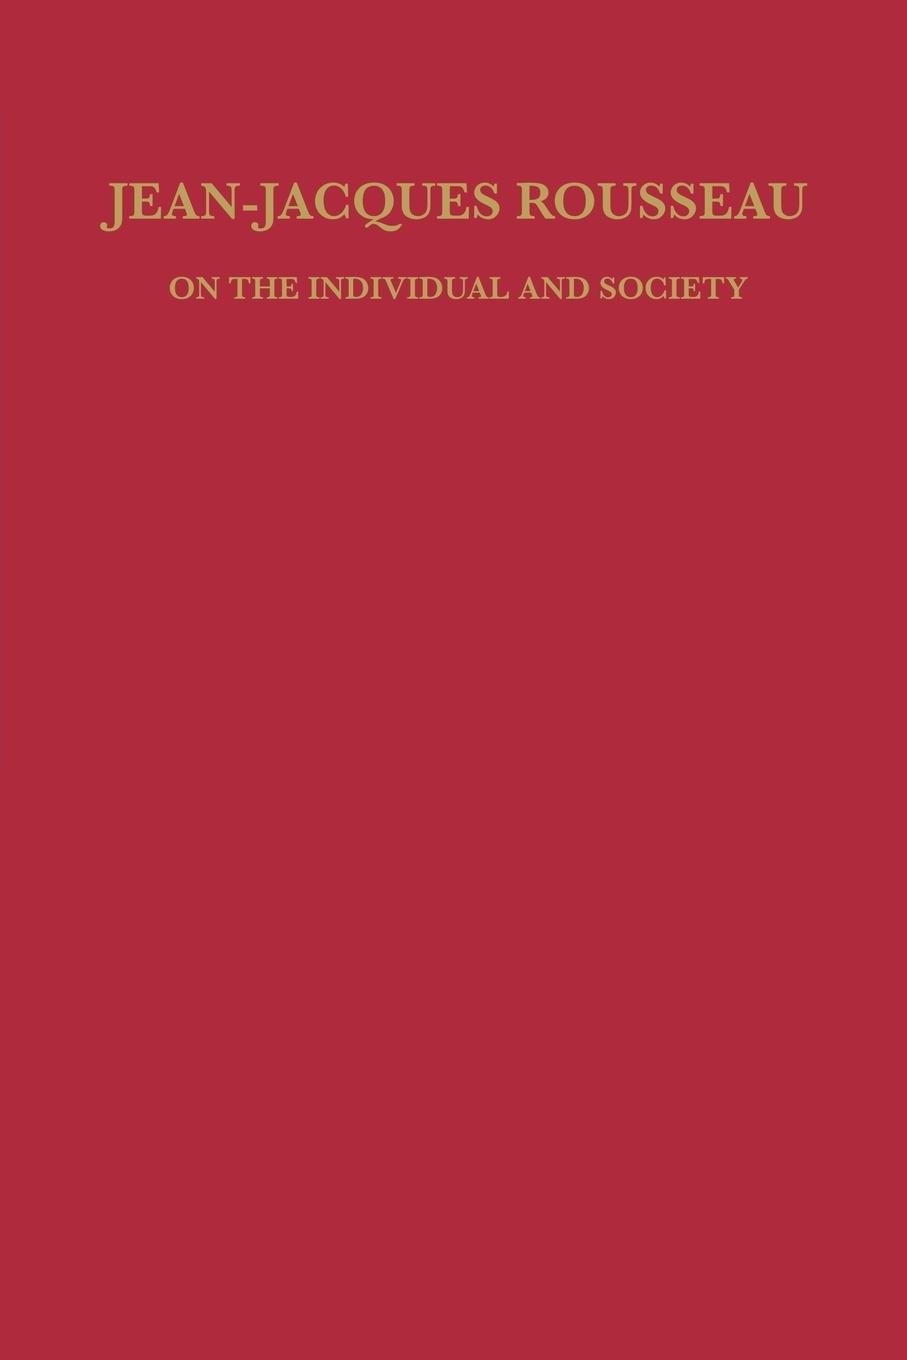 Jean-Jacques Rousseau: On The Individual and Society (Studies In Romance Languages)